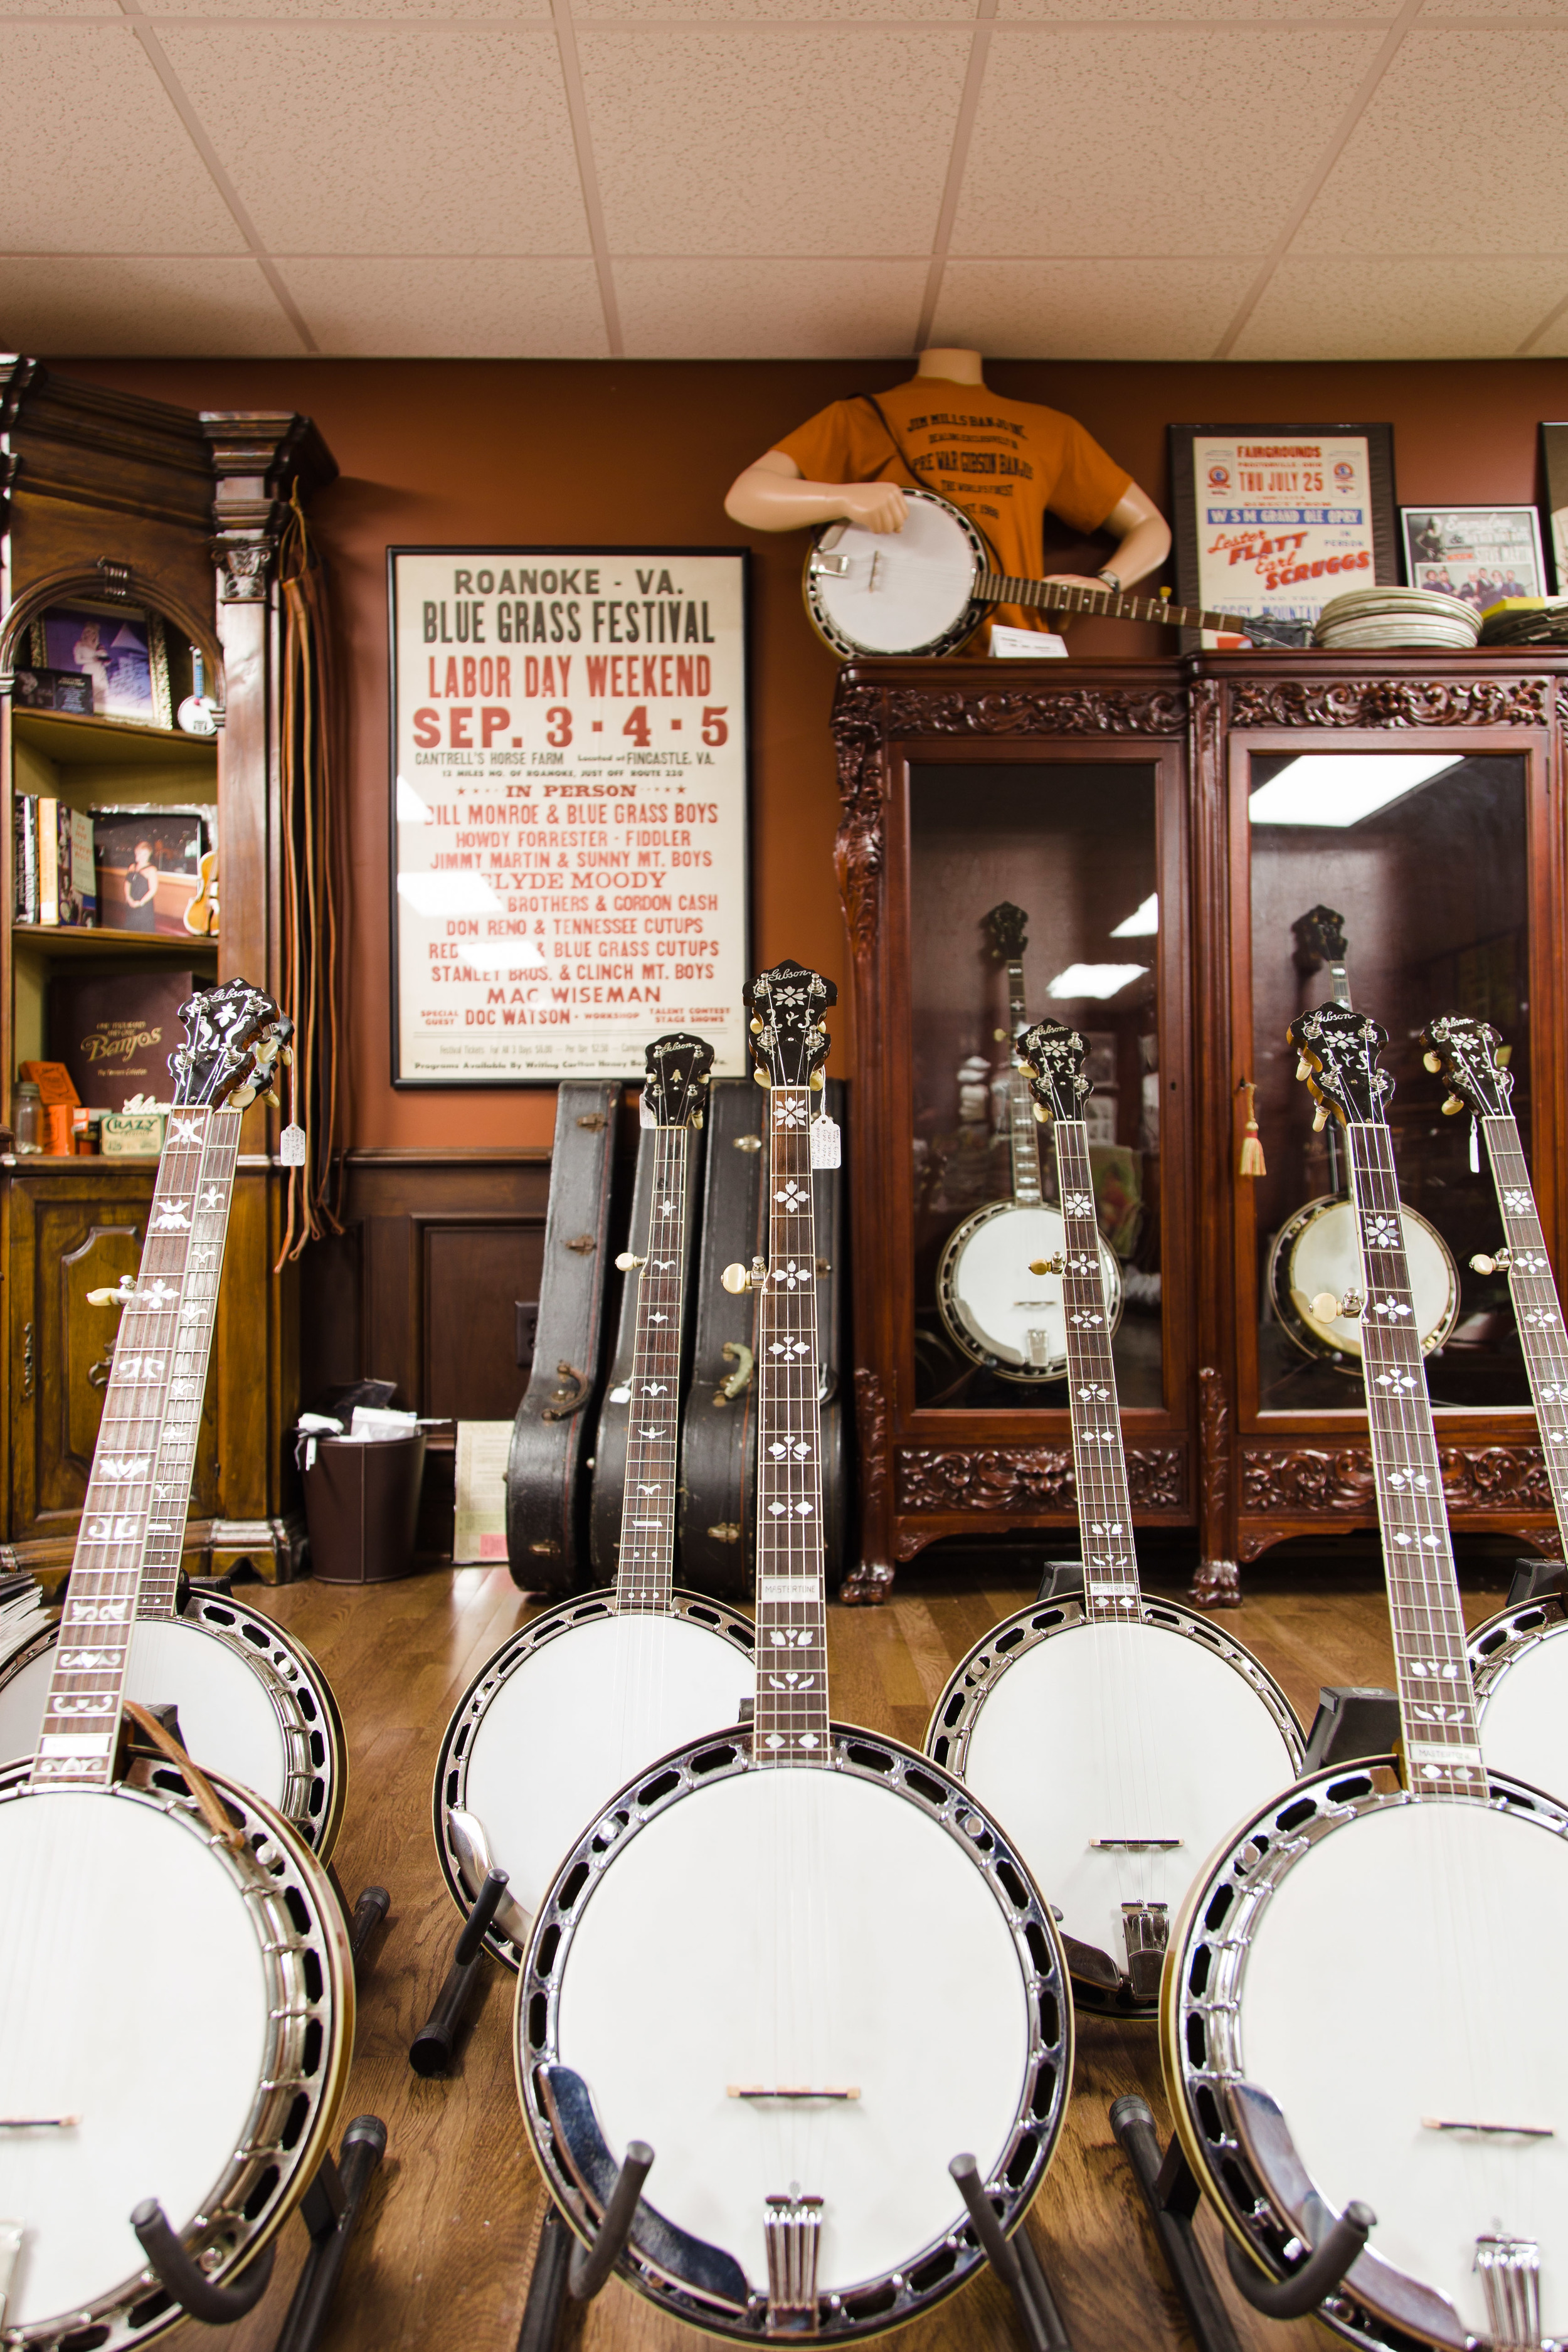 Seven of Mills' banjos waiting to find new homes.